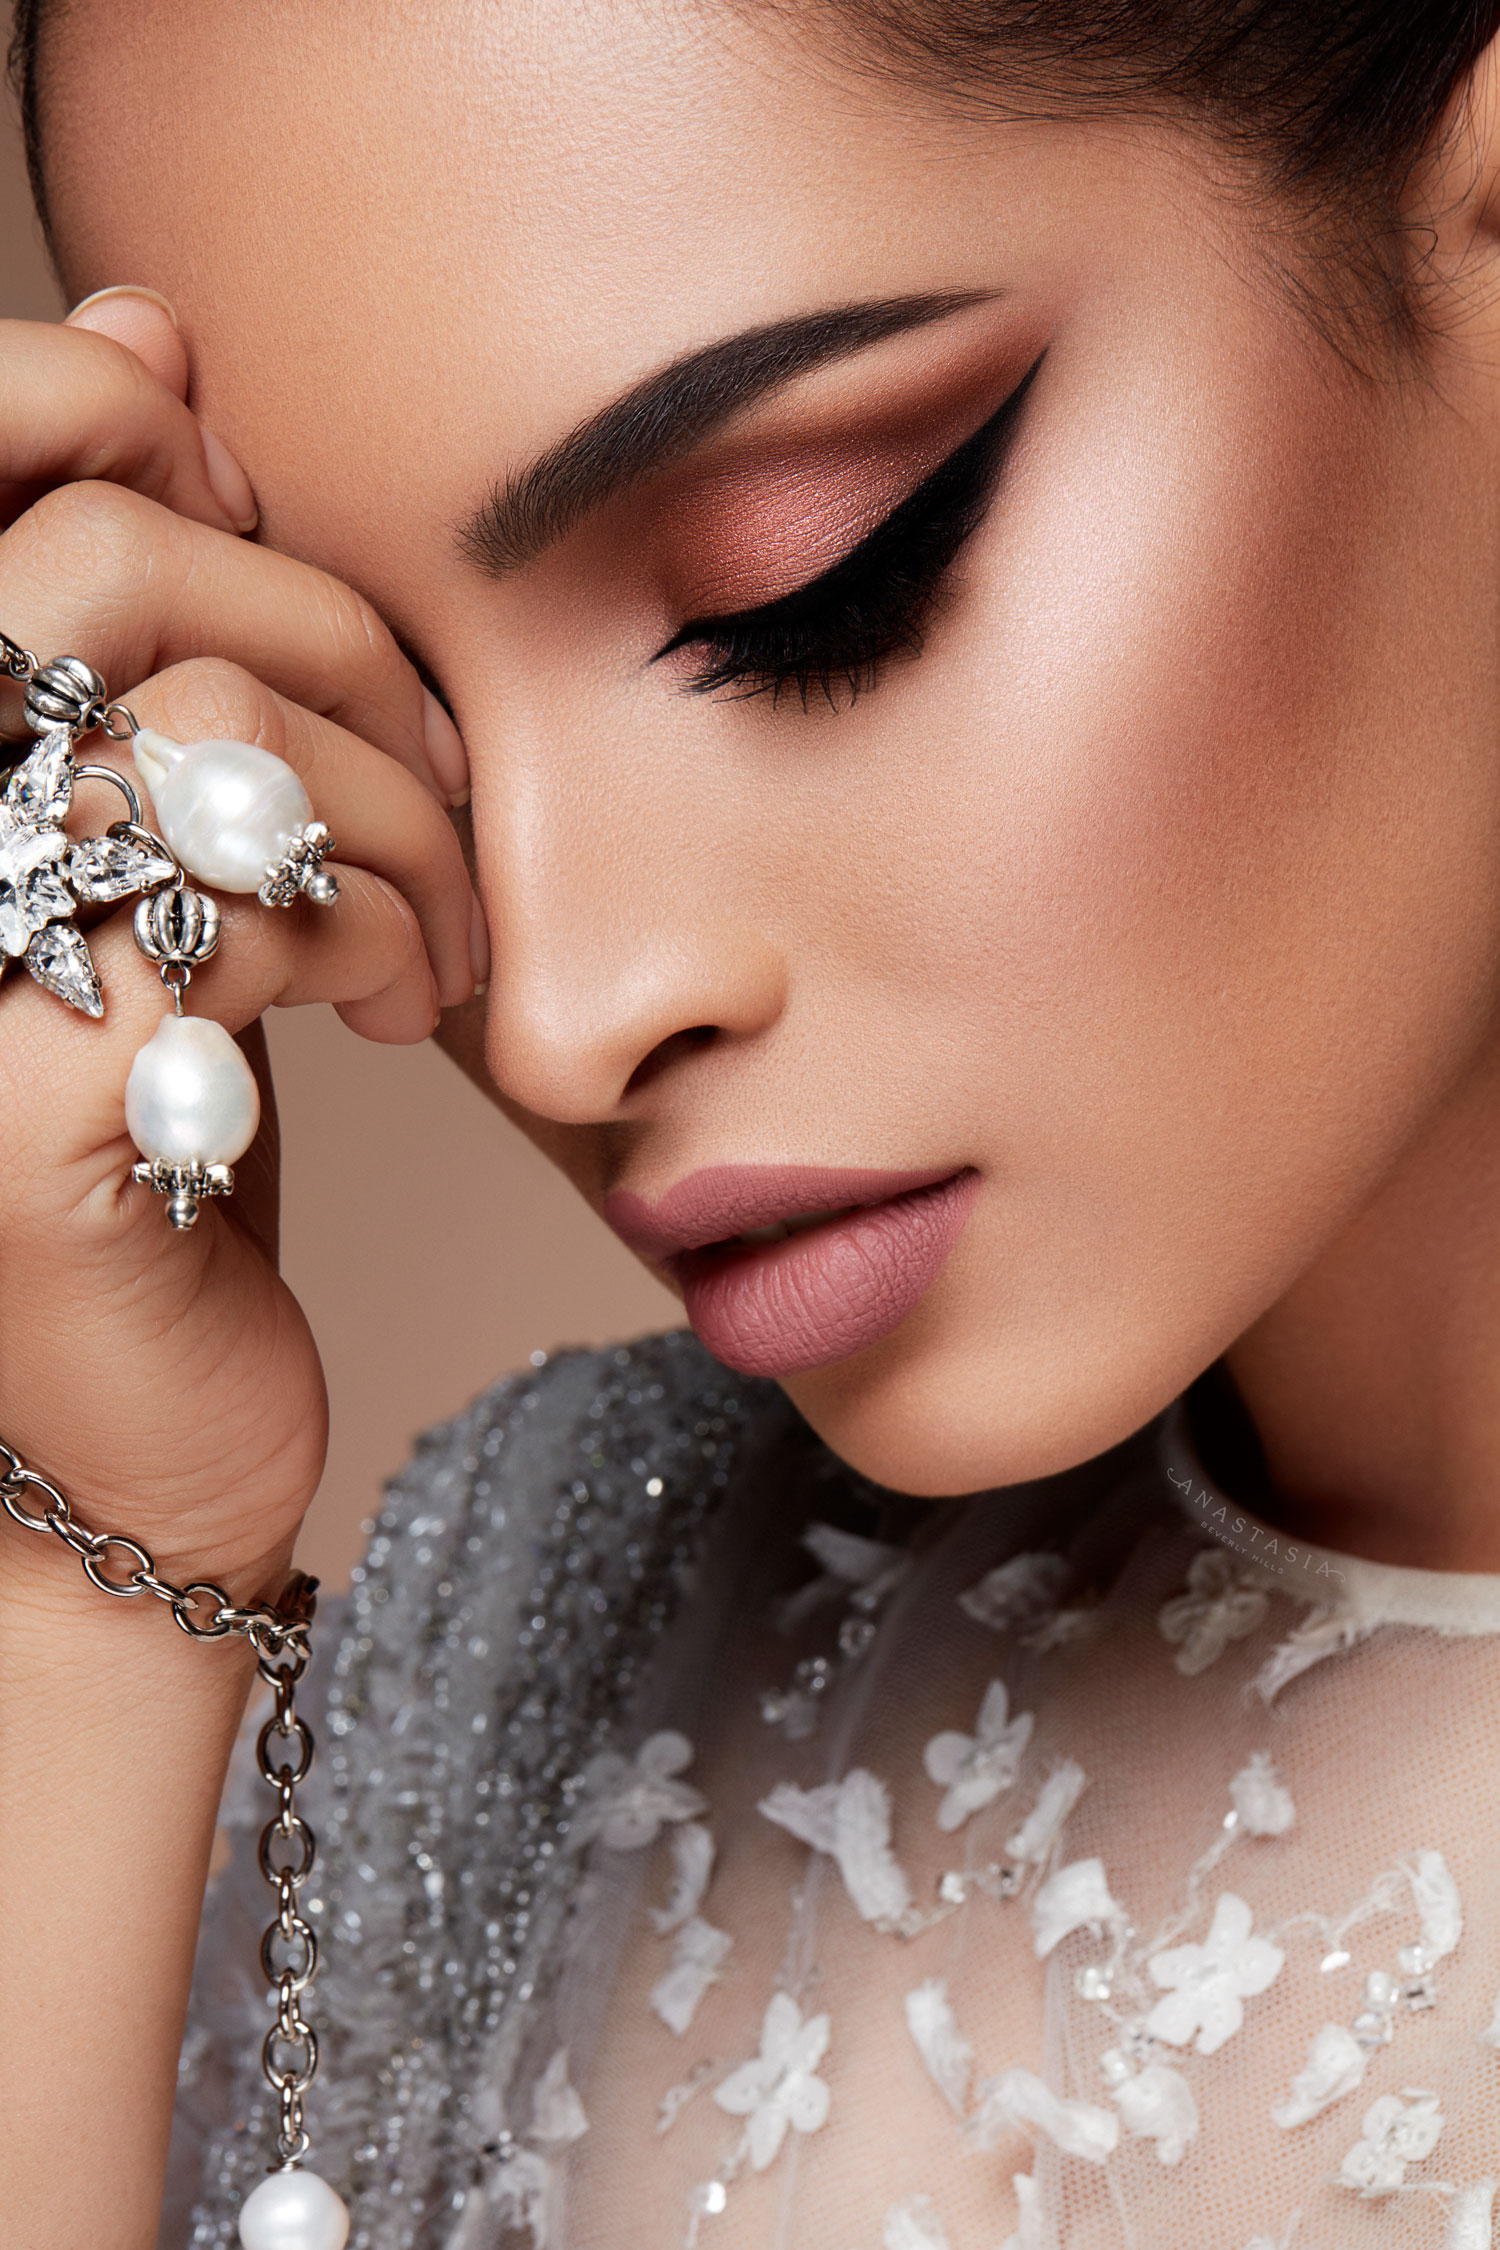 Anastasia Beverly Hills: Anastasia Beverly Hills Launches First Bridal-Inspired